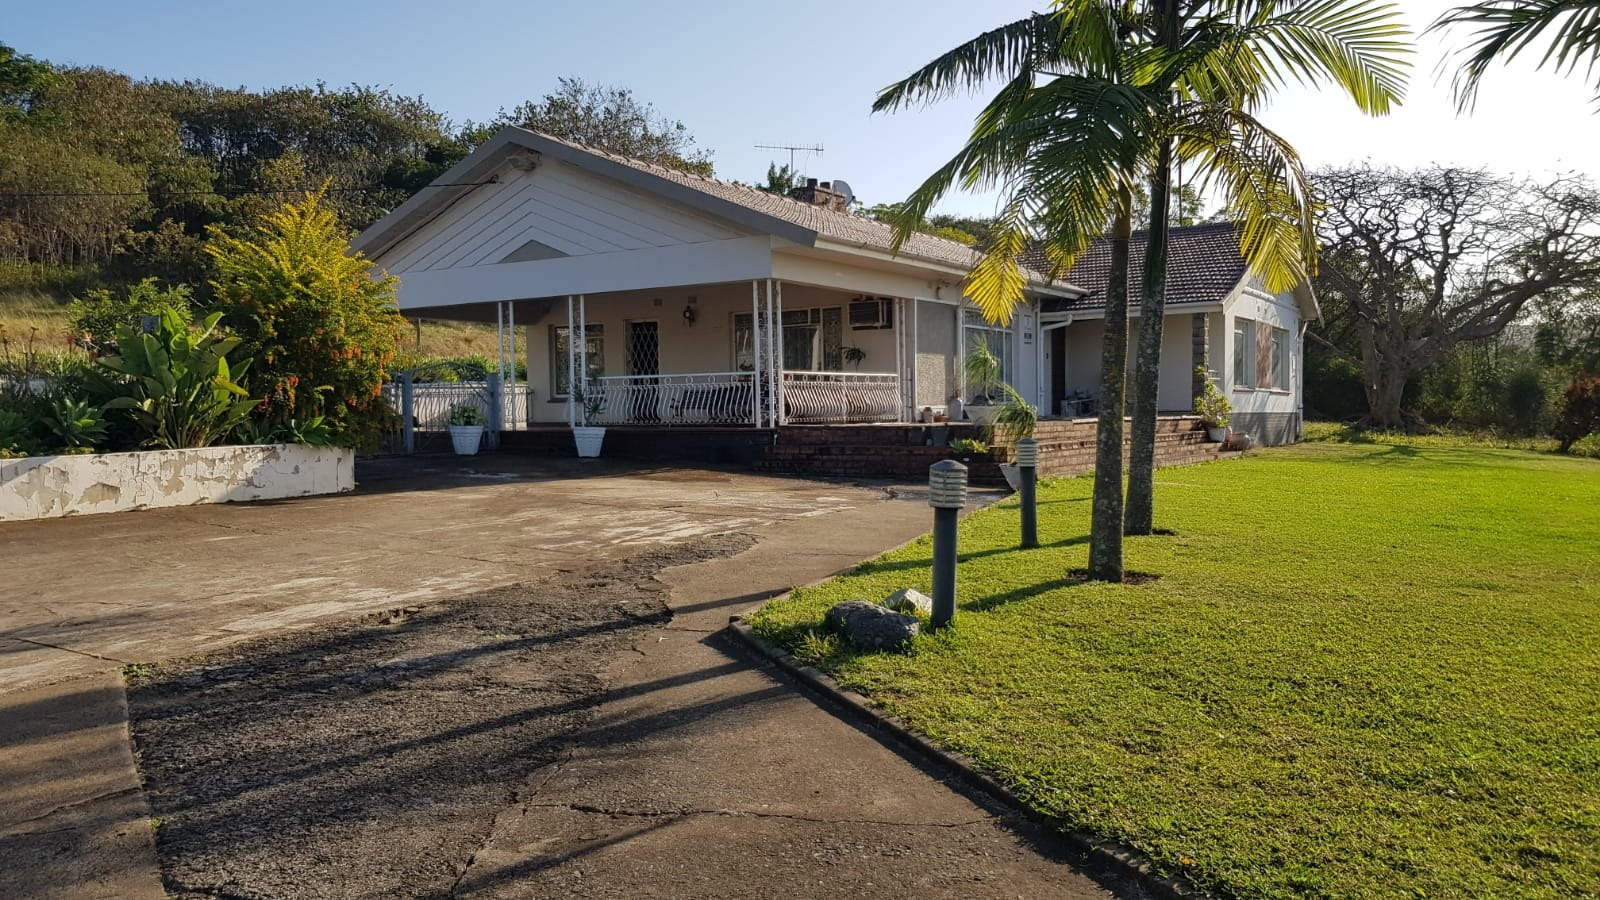 4 Bedroom House For Sale in Newlands West